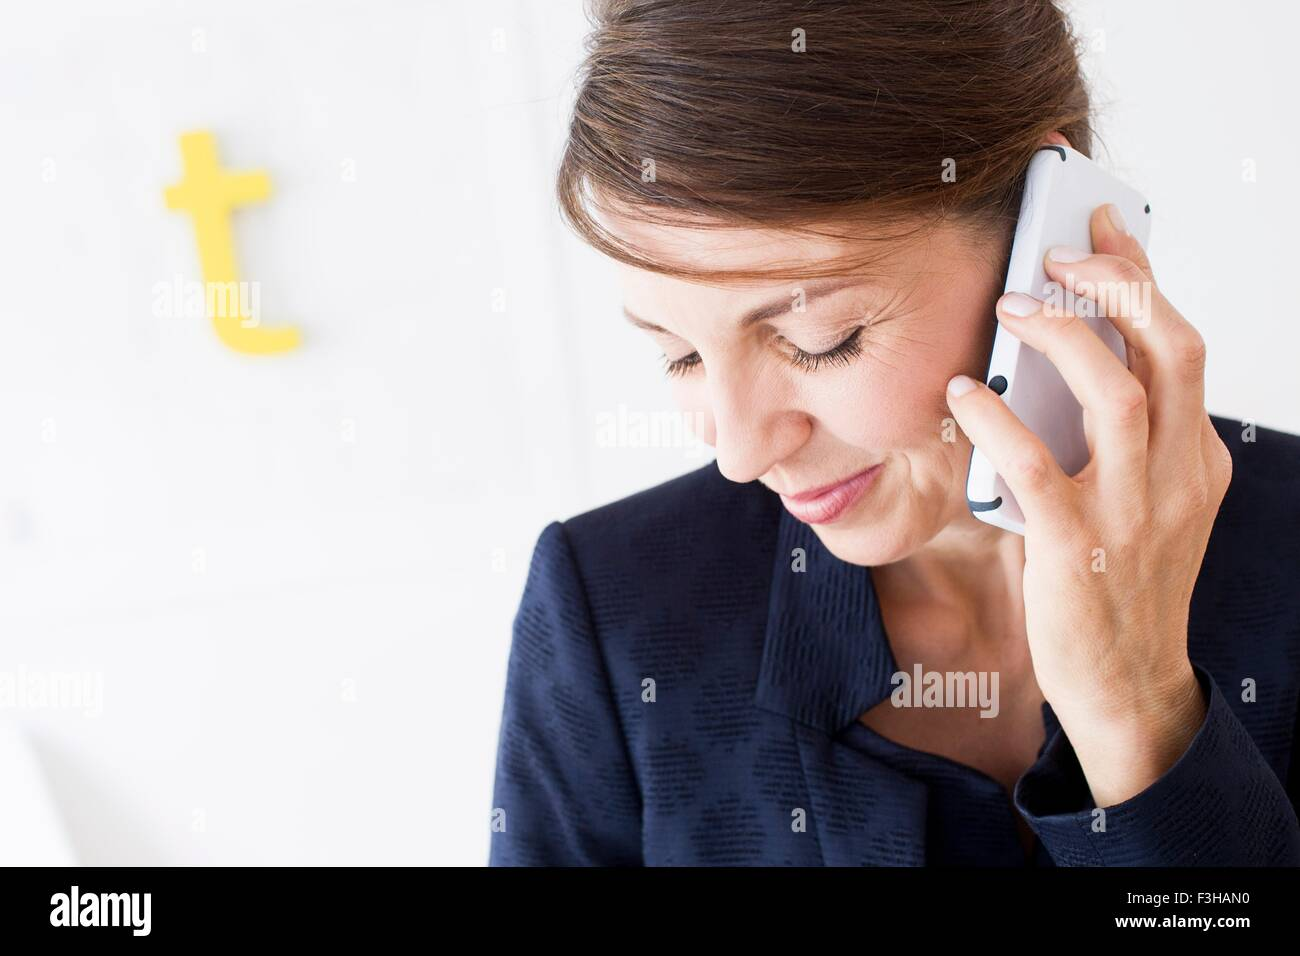 Head and shoulders of mature woman using smartphone, looking down smiling - Stock Image